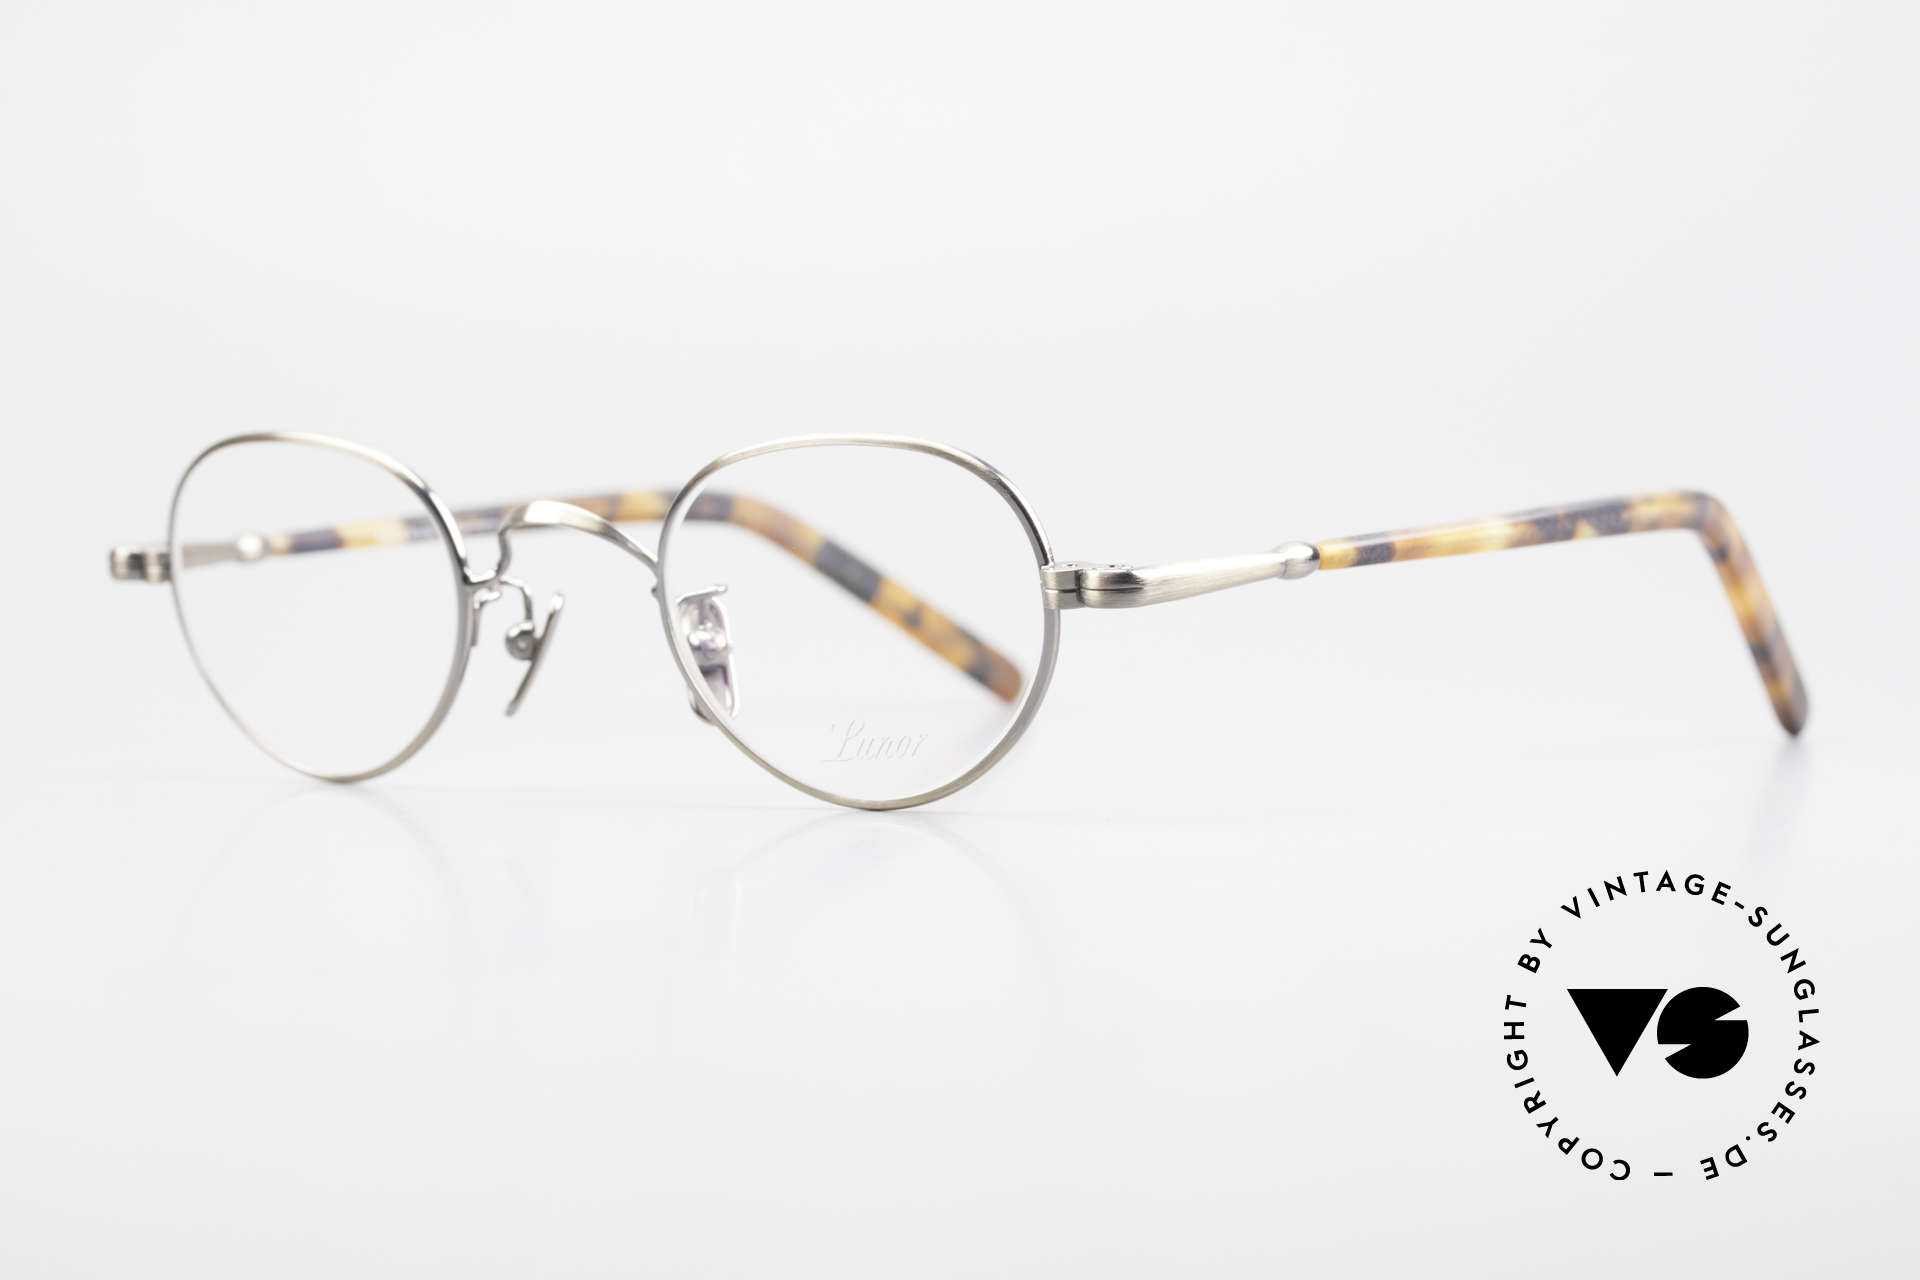 Lunor VA 103 Lunor Eyeglasses Old Original, without ostentatious logos (but in a timeless elegance), Made for Men and Women